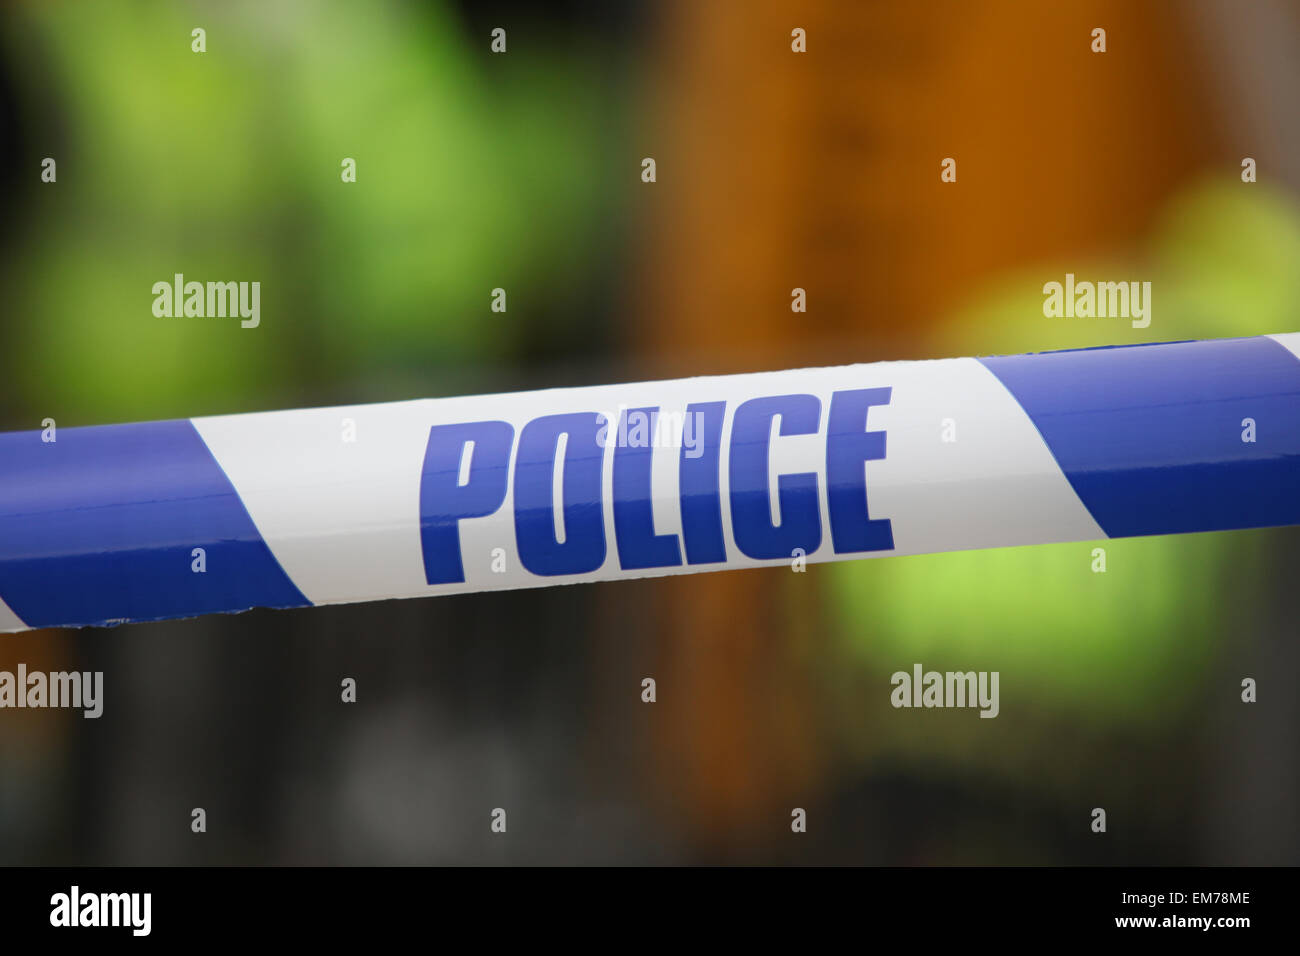 Police tape at the scene of an accident Stock Photo